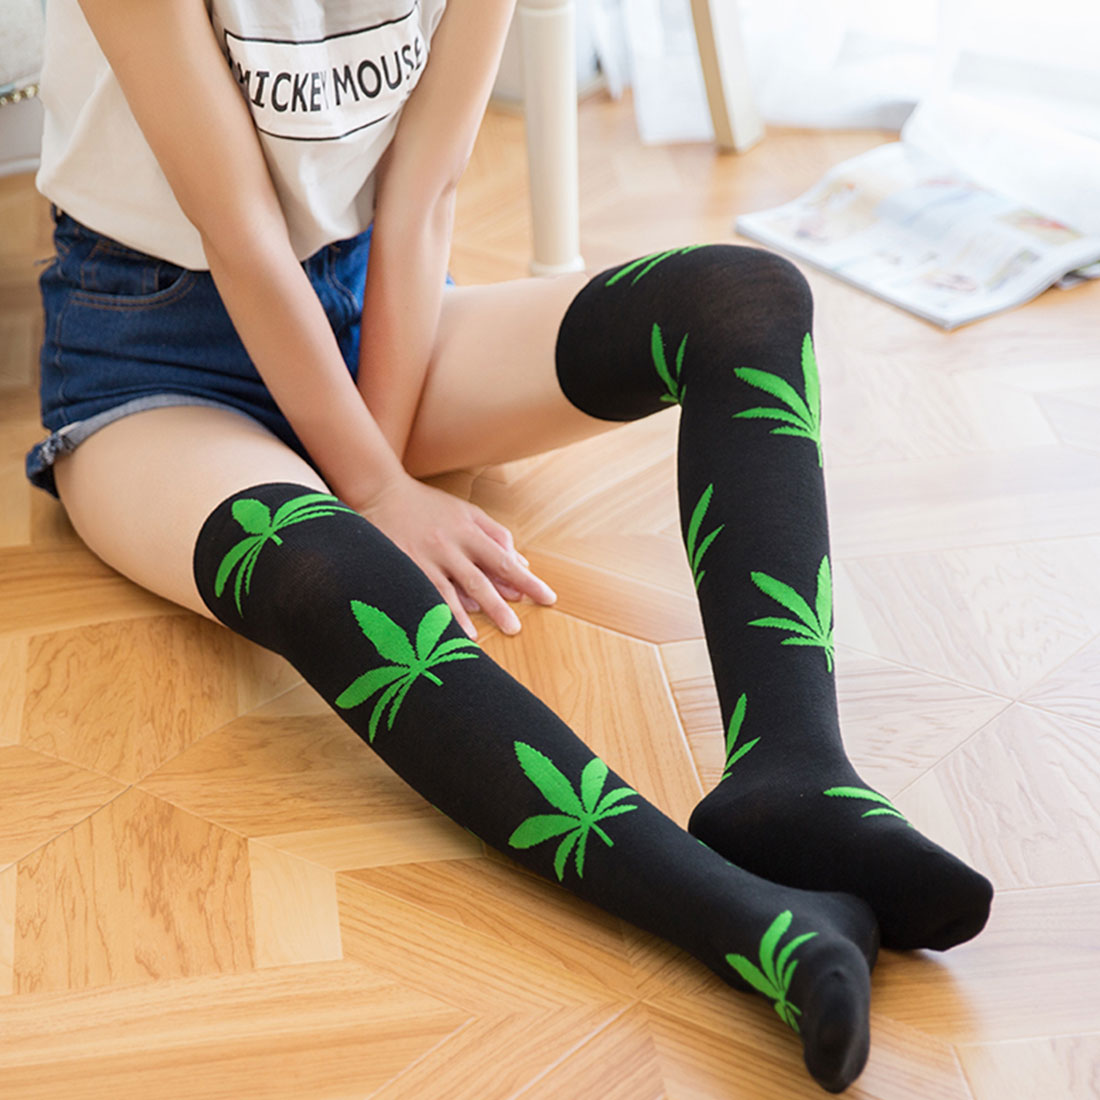 Fashion <font><b>Kawaii</b></font> <font><b>Knee</b></font> High <font><b>Socks</b></font> For Ladies Meias New Maple Leaf Women's Stockings Sexy Harajuku Thigh High <font><b>Socks</b></font> Long <font><b>Knee</b></font> <font><b>Socks</b></font> image